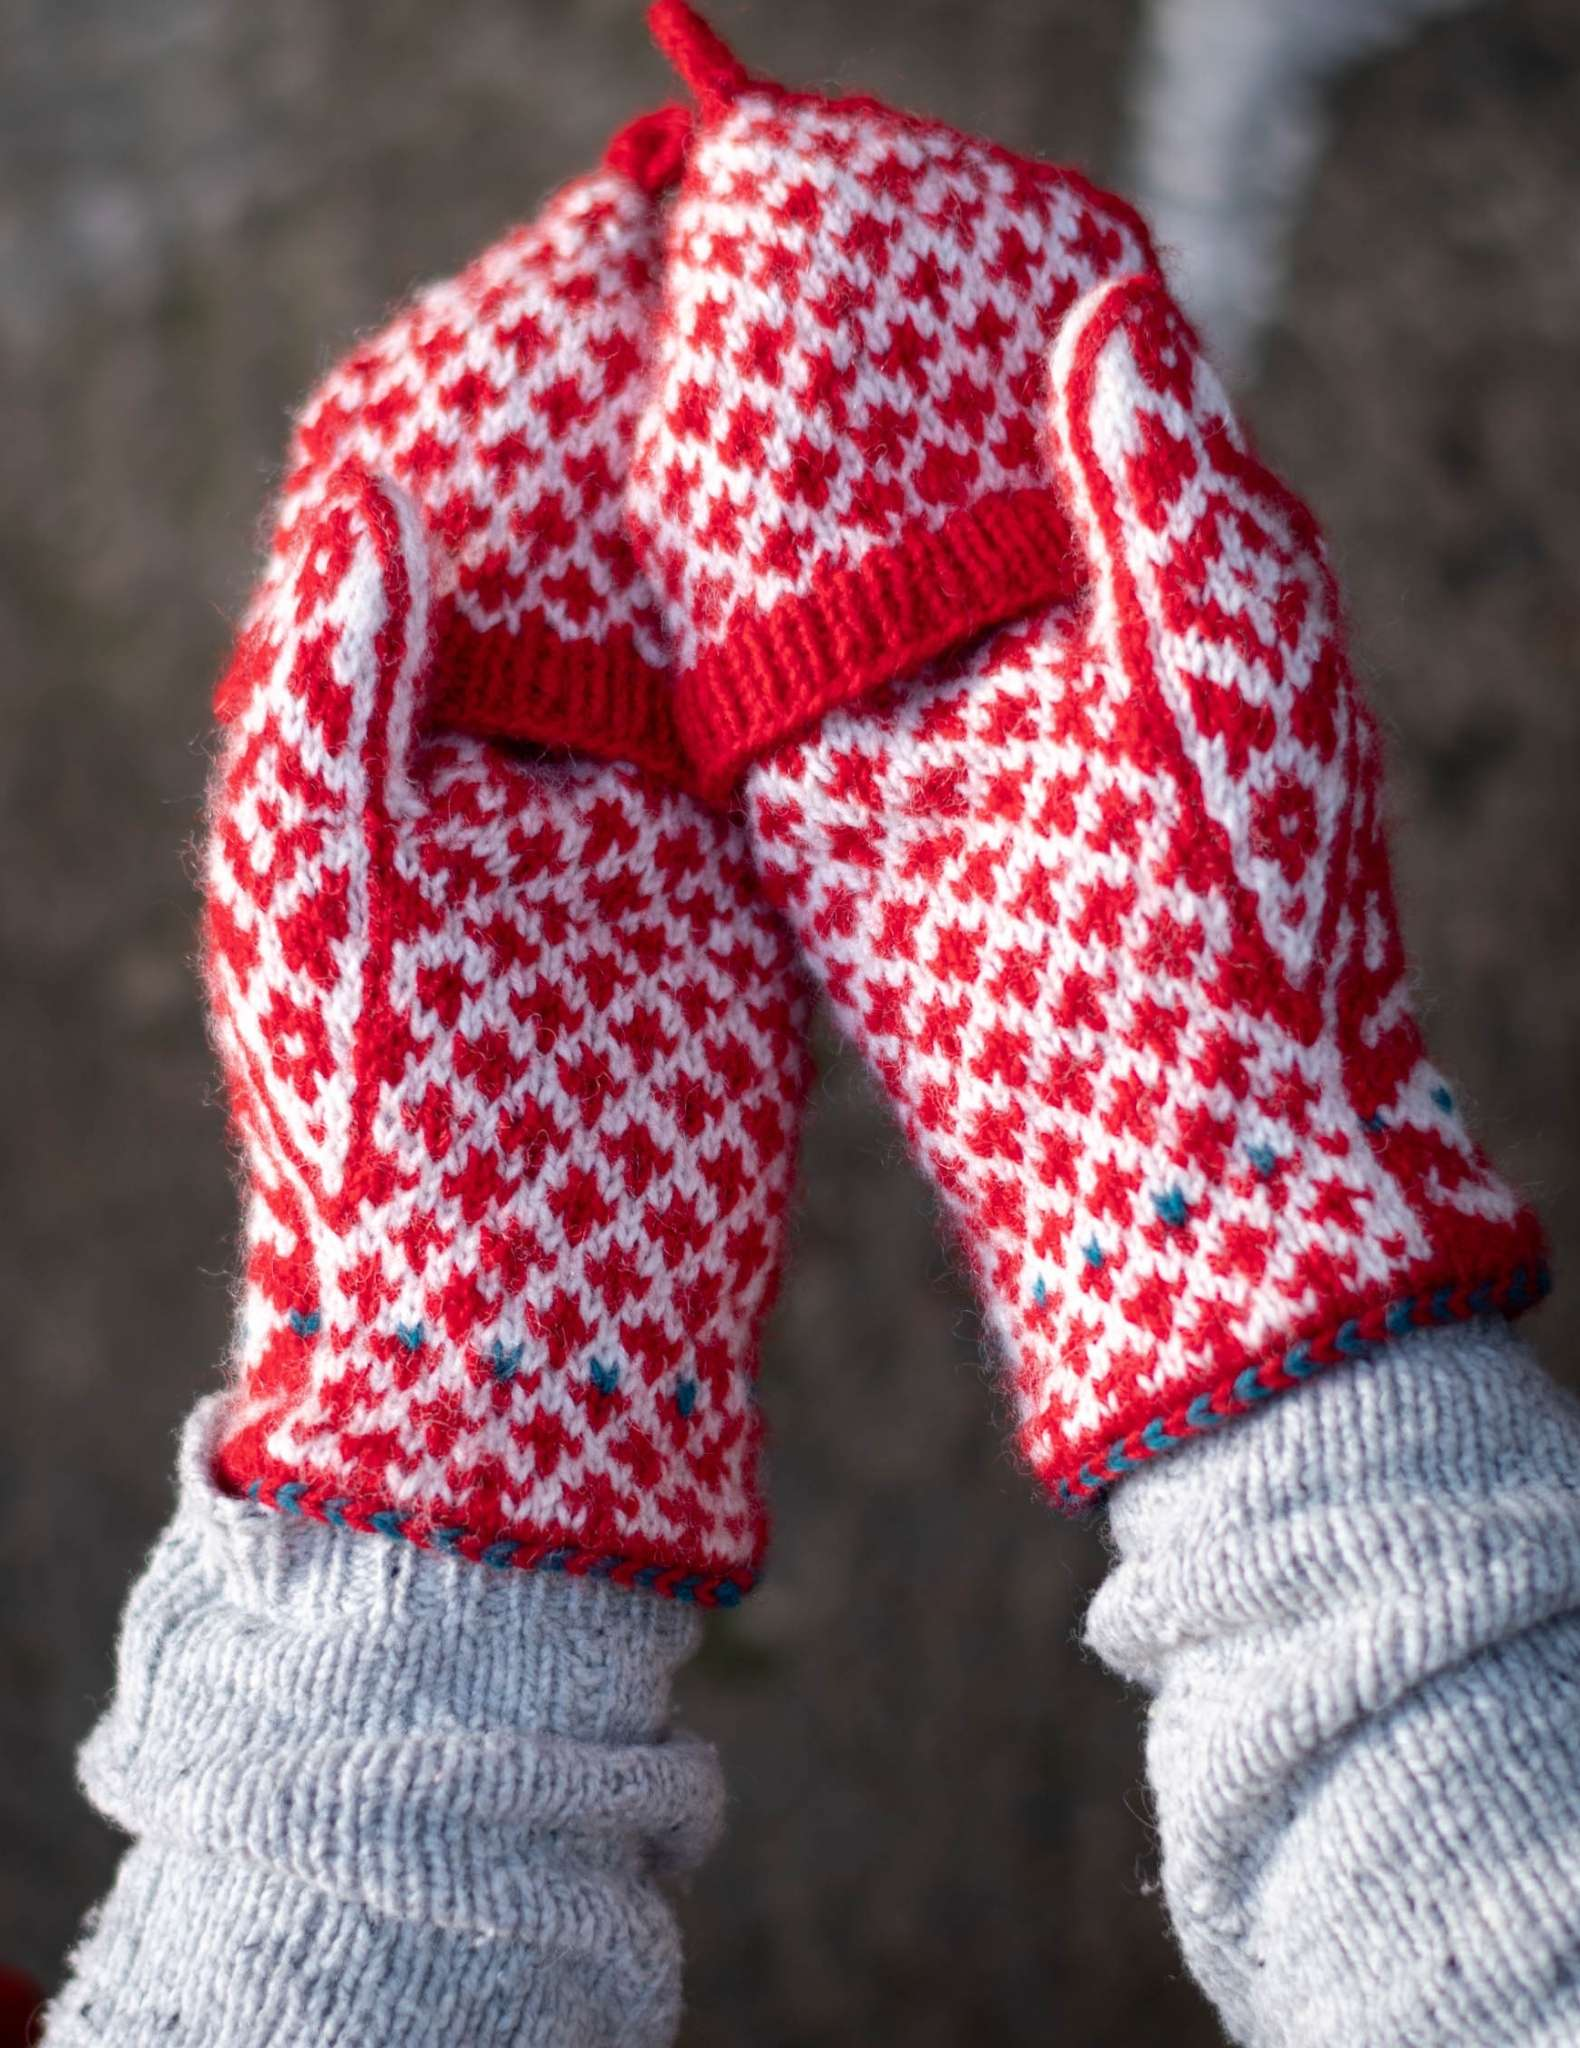 Hands wear a pair of colourwork mittens in red and white, and are held side by side with the palms facing up.